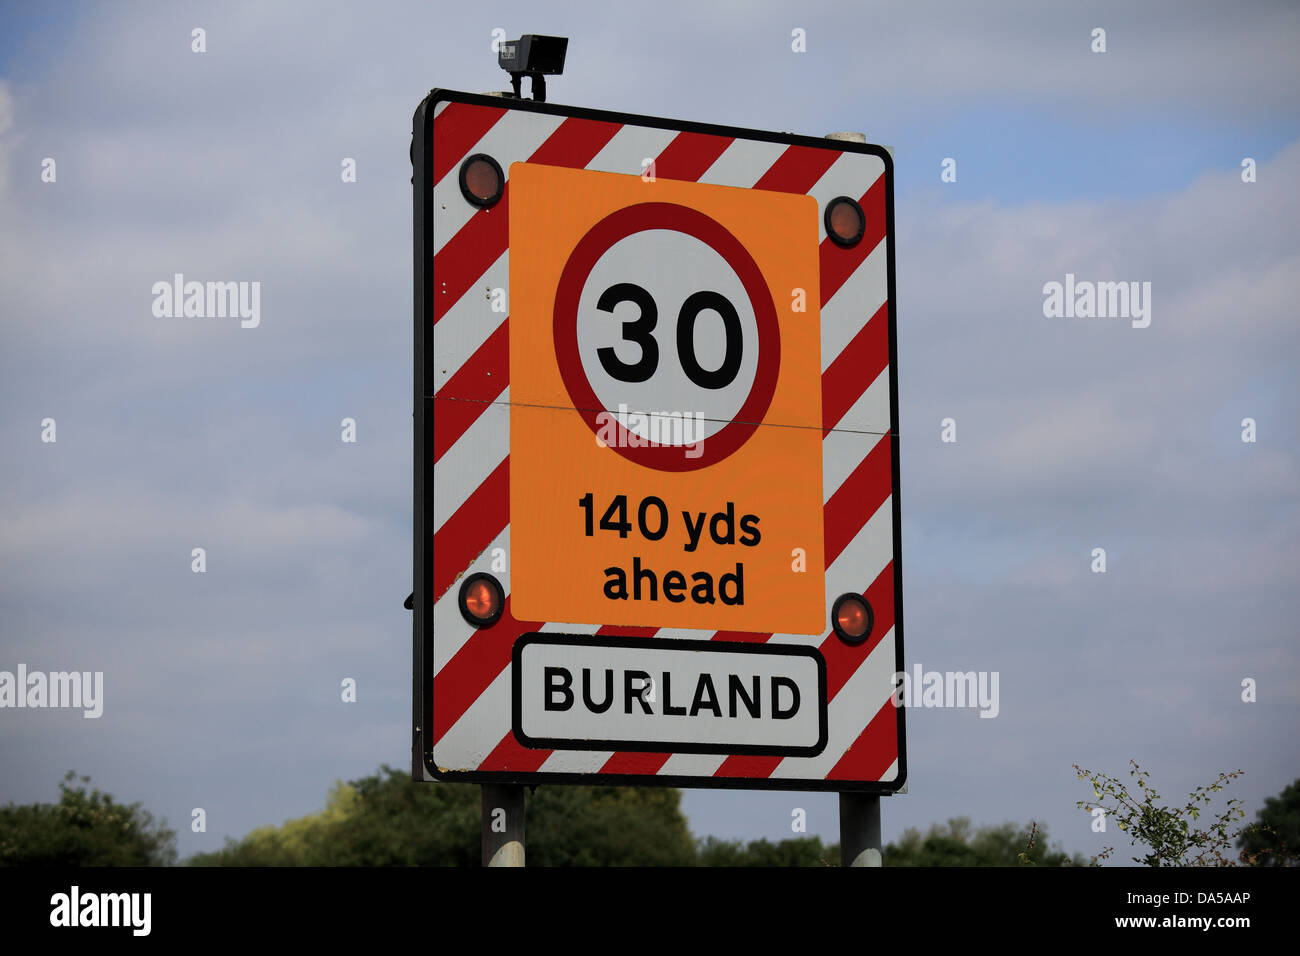 flashing speed limit sign stock photos flashing speed limit sign stock images alamy. Black Bedroom Furniture Sets. Home Design Ideas